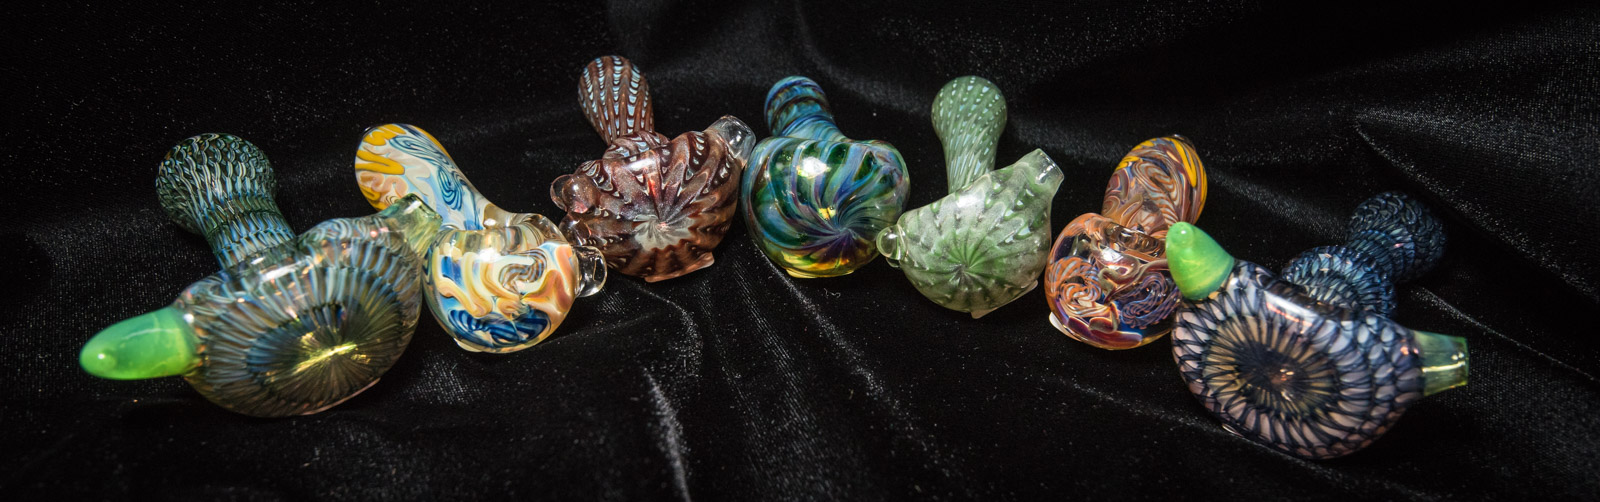 Glass Pipes - The Smoker's Den - Bloomington Normal